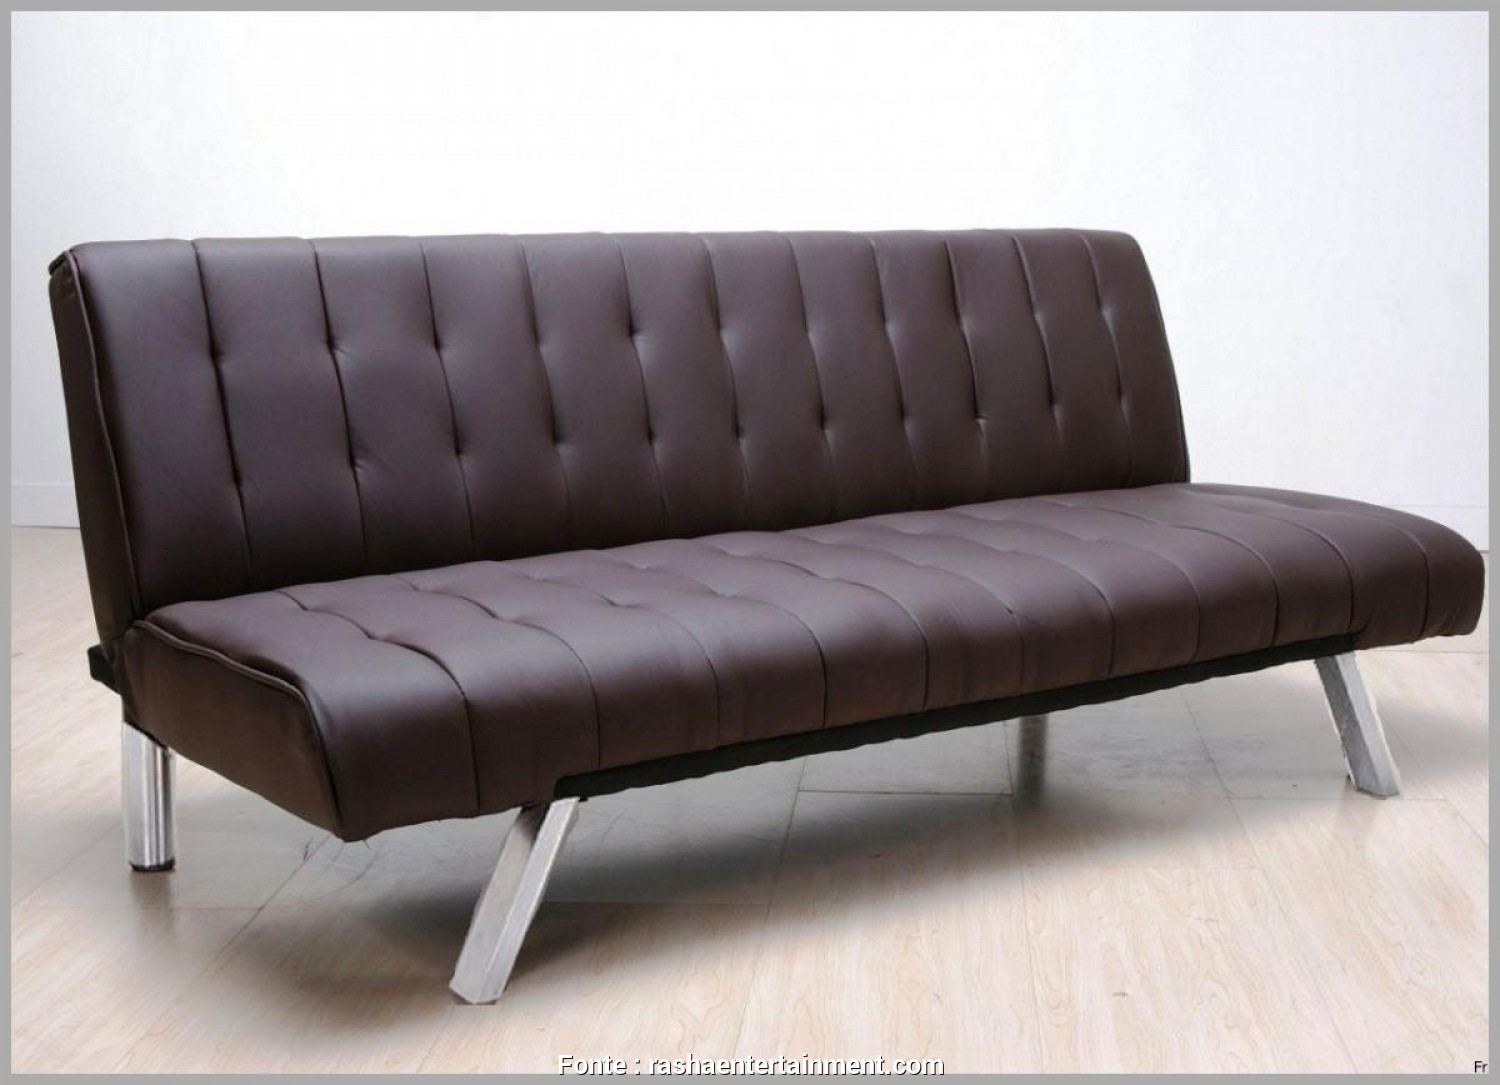 Futon Ikea A Vendre, Completare Decorate Your Living Room With Mission Futons Amazon, Rasha